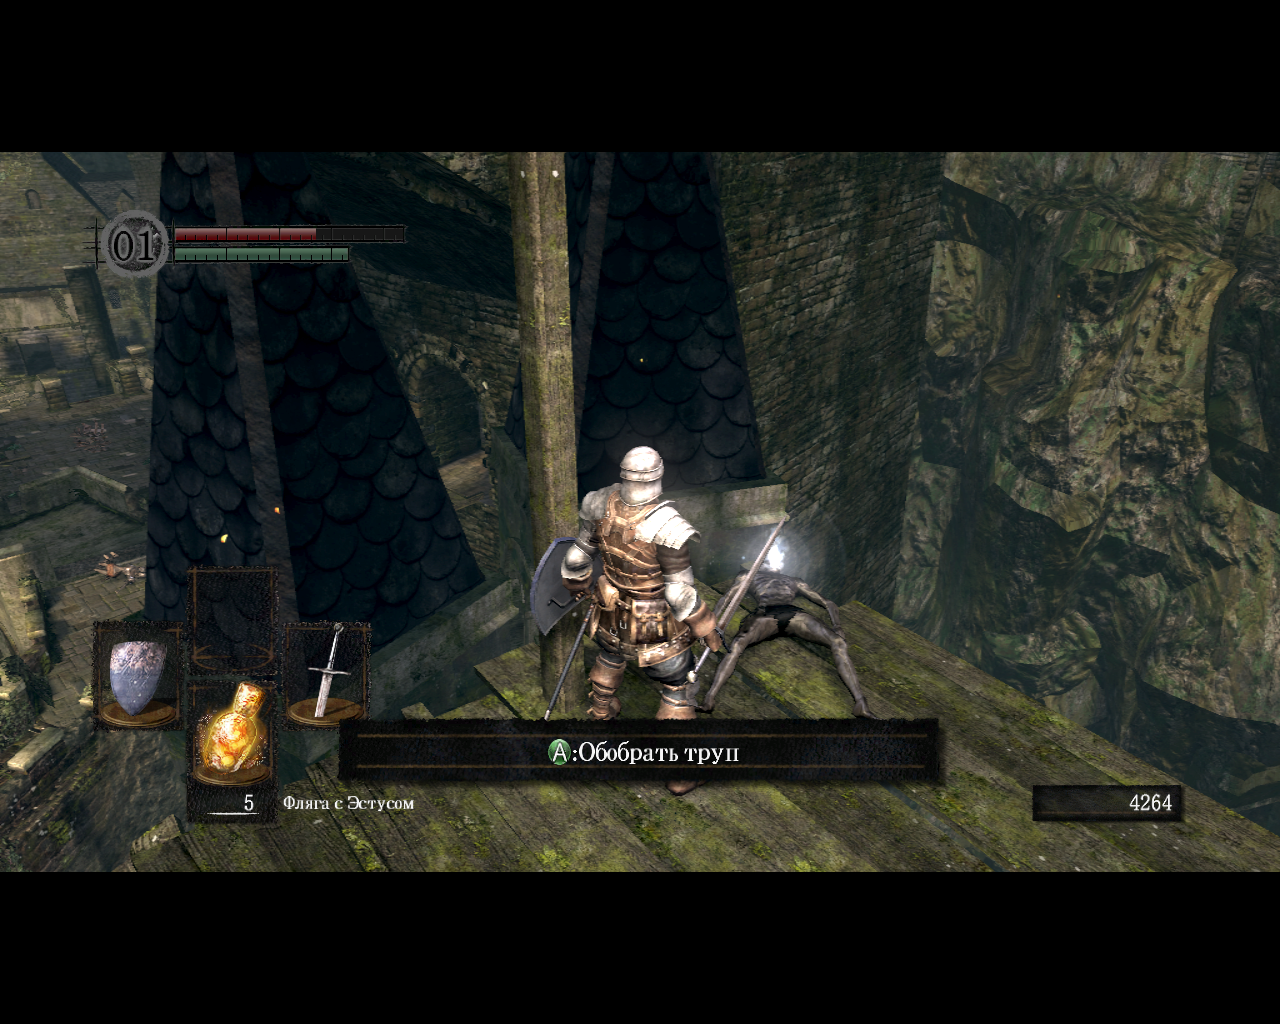 Dark Souls: Prepare to Die Edition Windows Loot bodies for souls and items